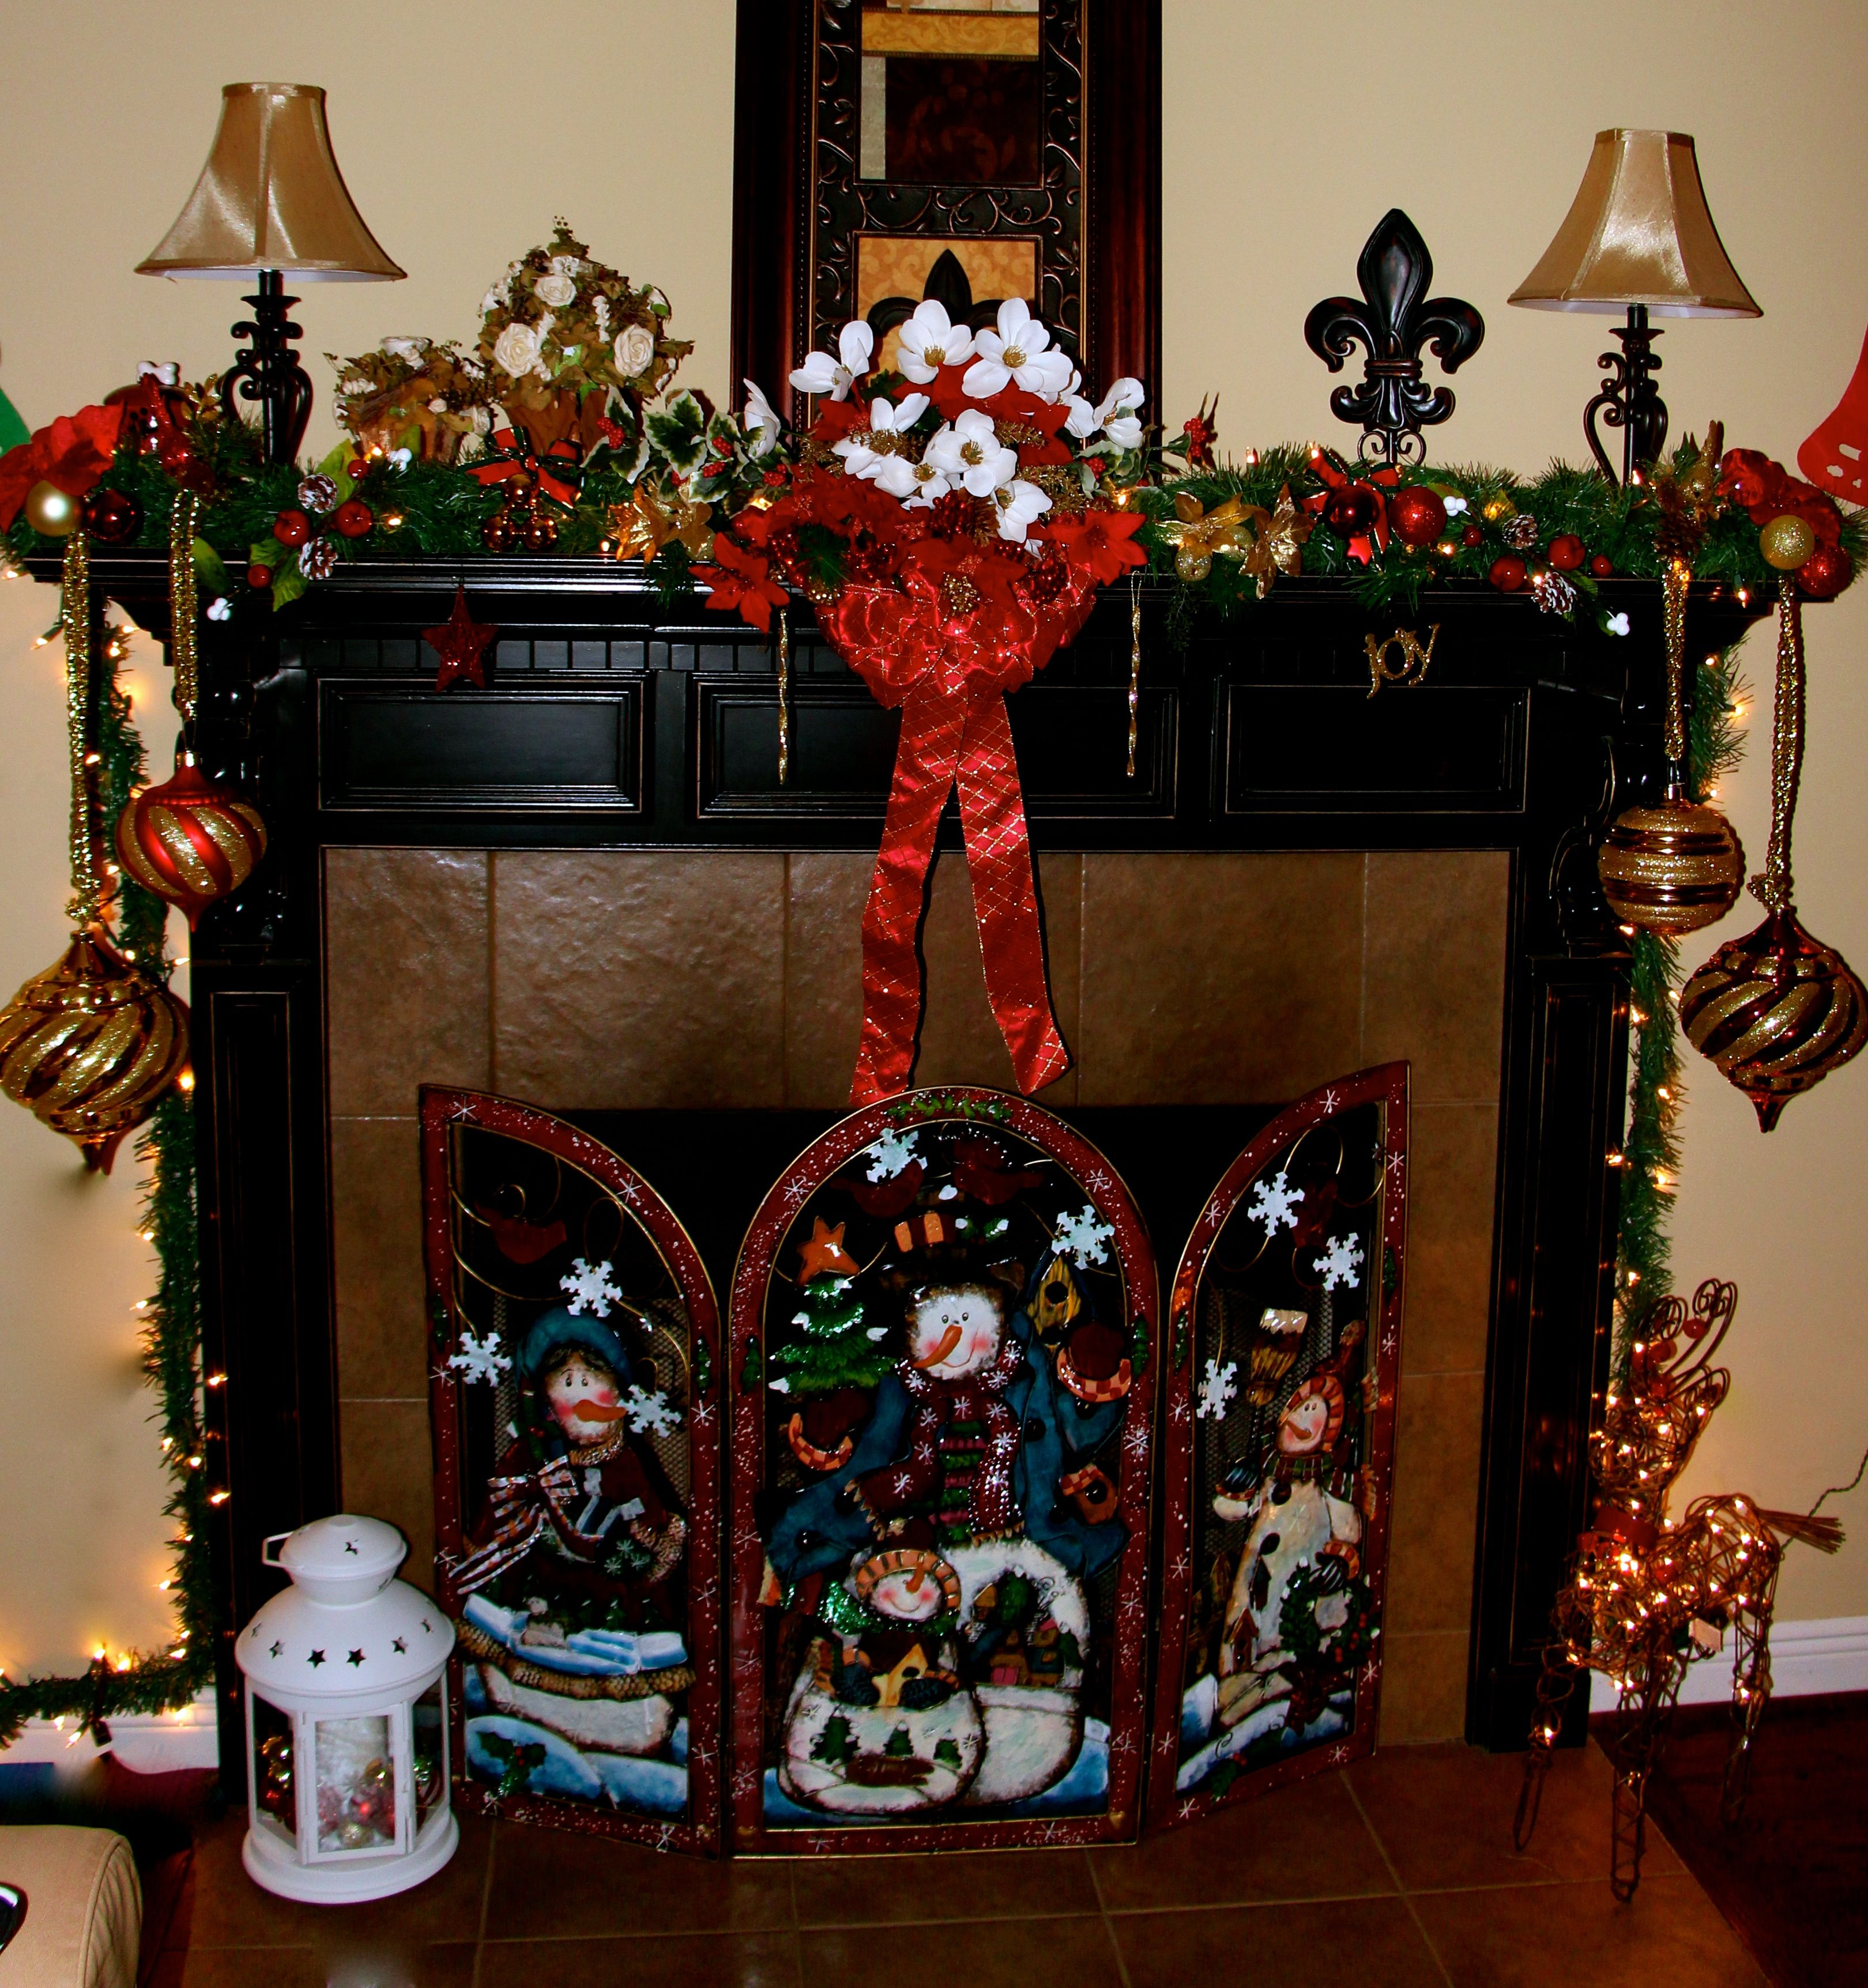 My affordable Christmas decoration this year. Fireplace mantel: 4 garlands from the Dollar Tree, half every one and twist them together, light up garland at last, for the center piece just put some christmas stems in there as well as some ornaments, also from the Dollar Tree, the big ornaments are 3-4$ at Big Lots. There you go, for about 35$!  Happy Holidays